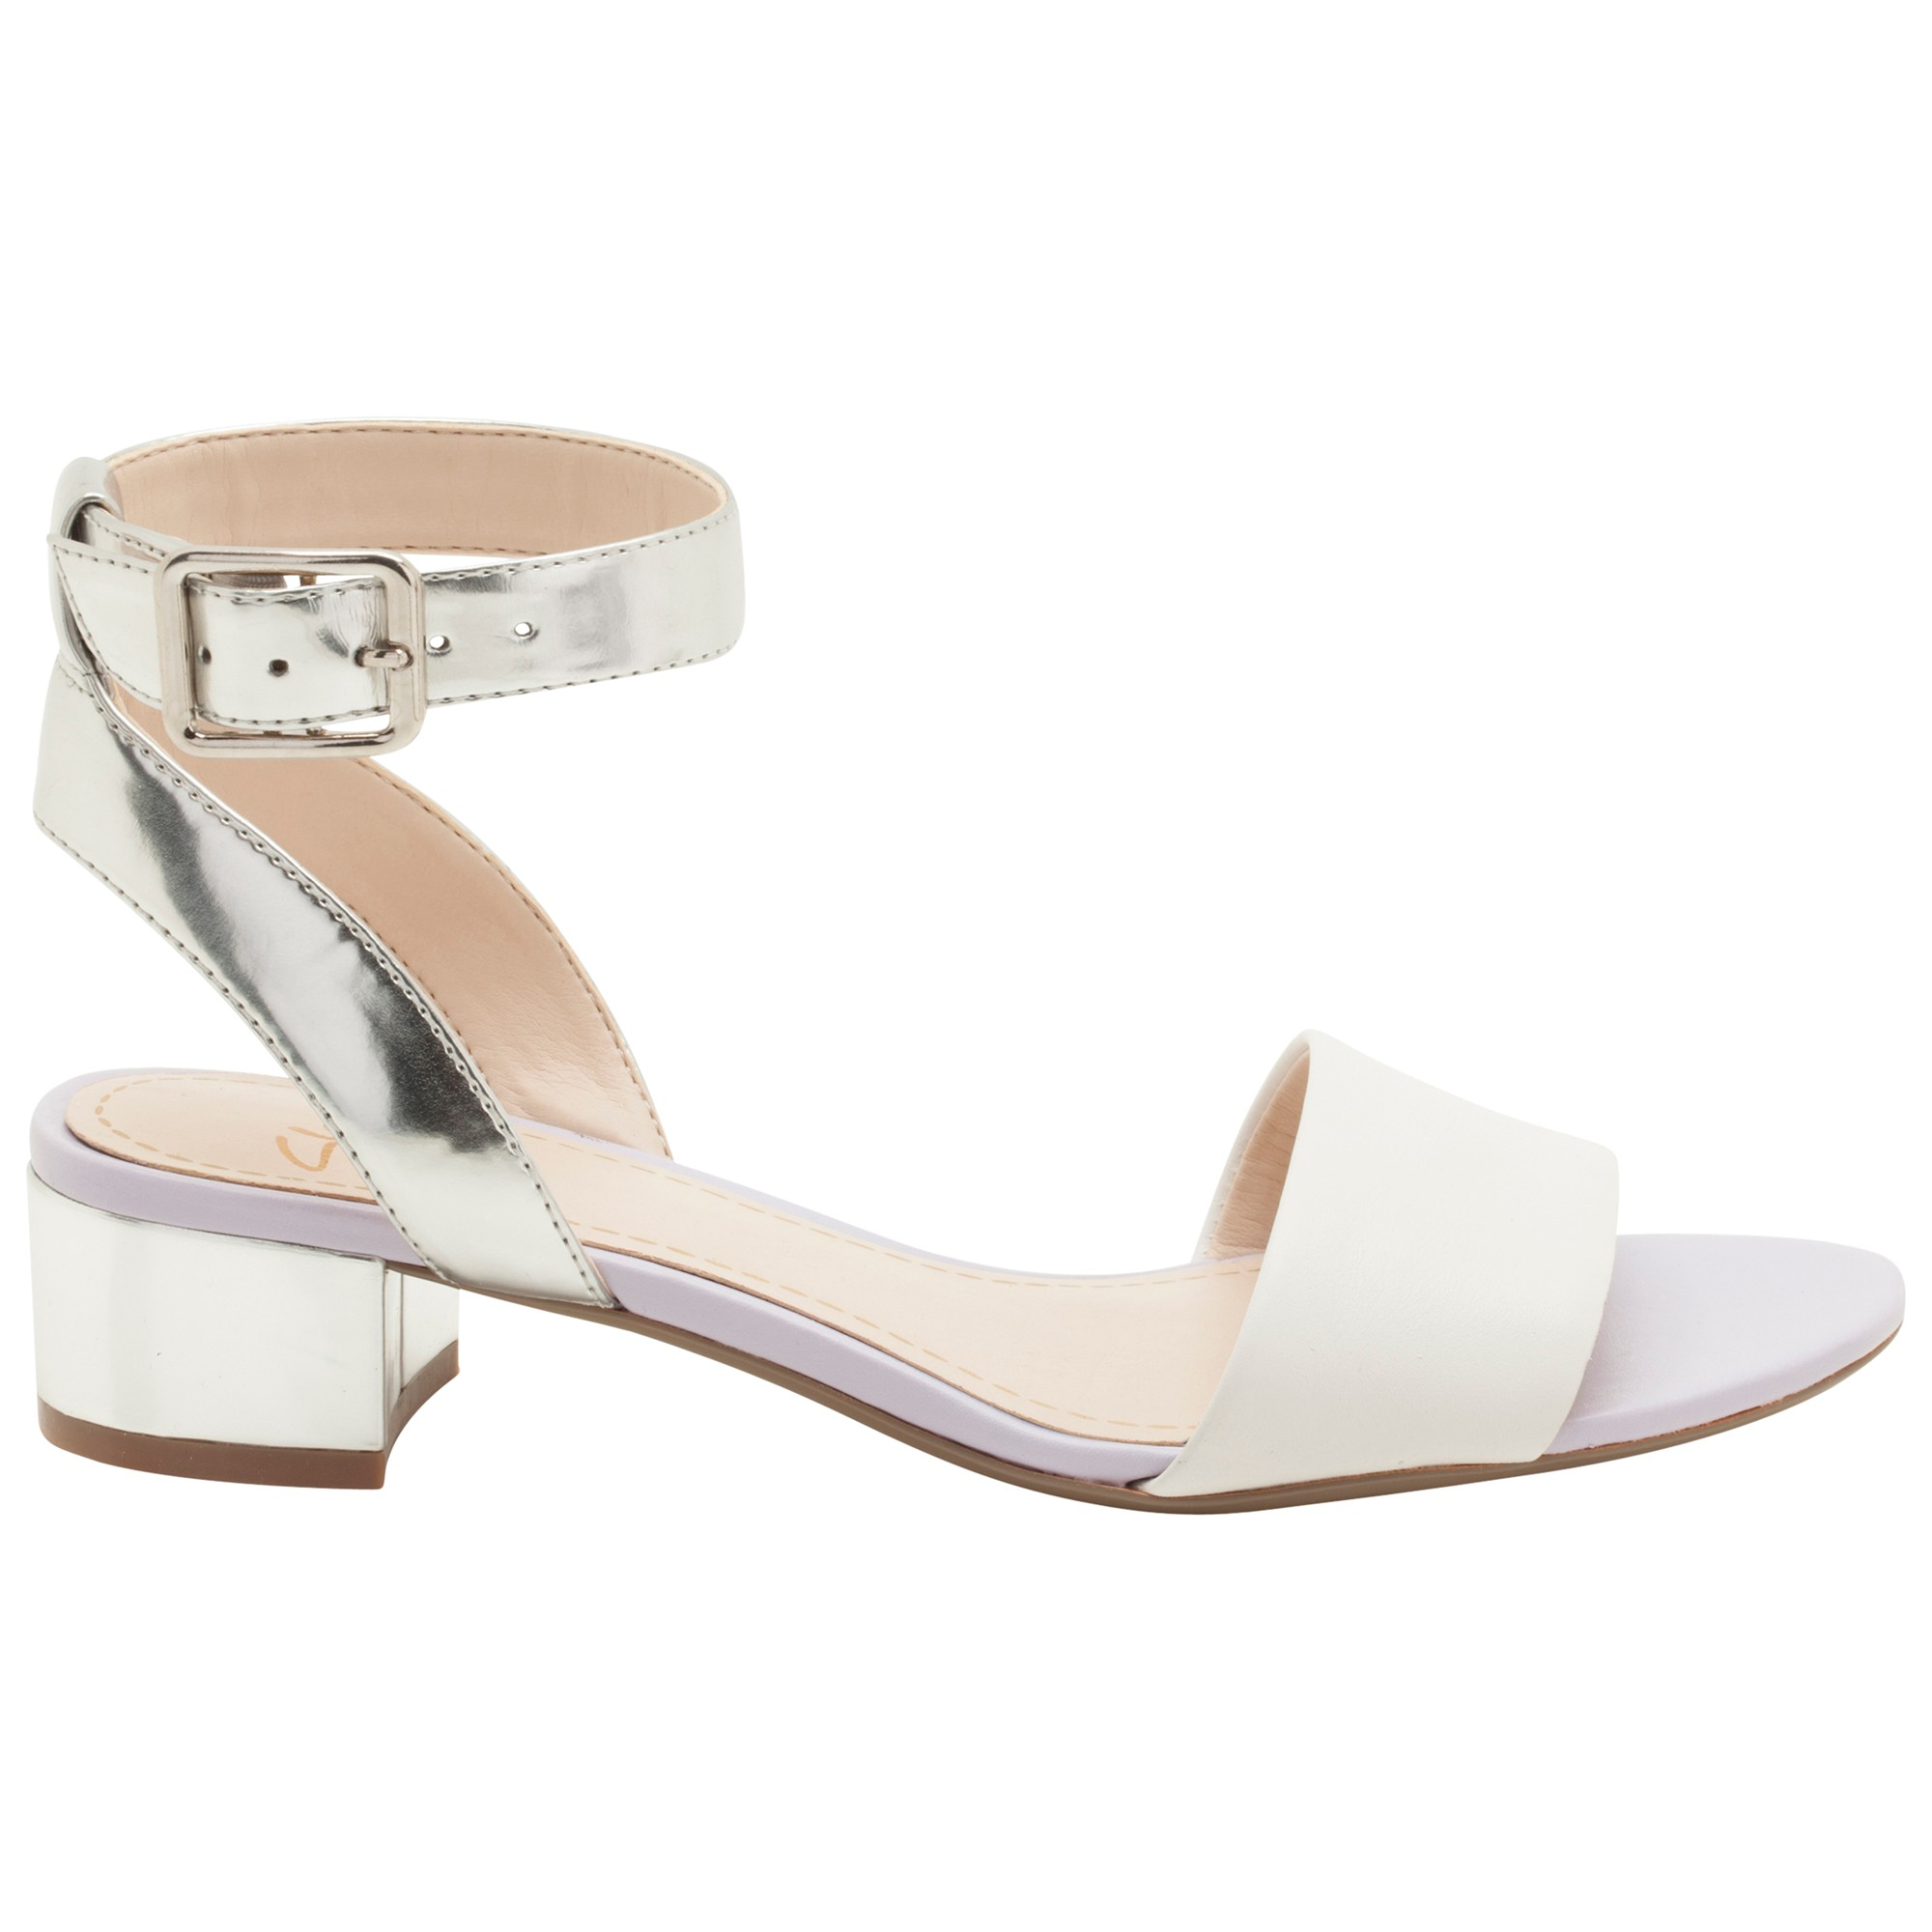 0bc99862b Clarks Sharna Balcony Sandals in White - Lyst